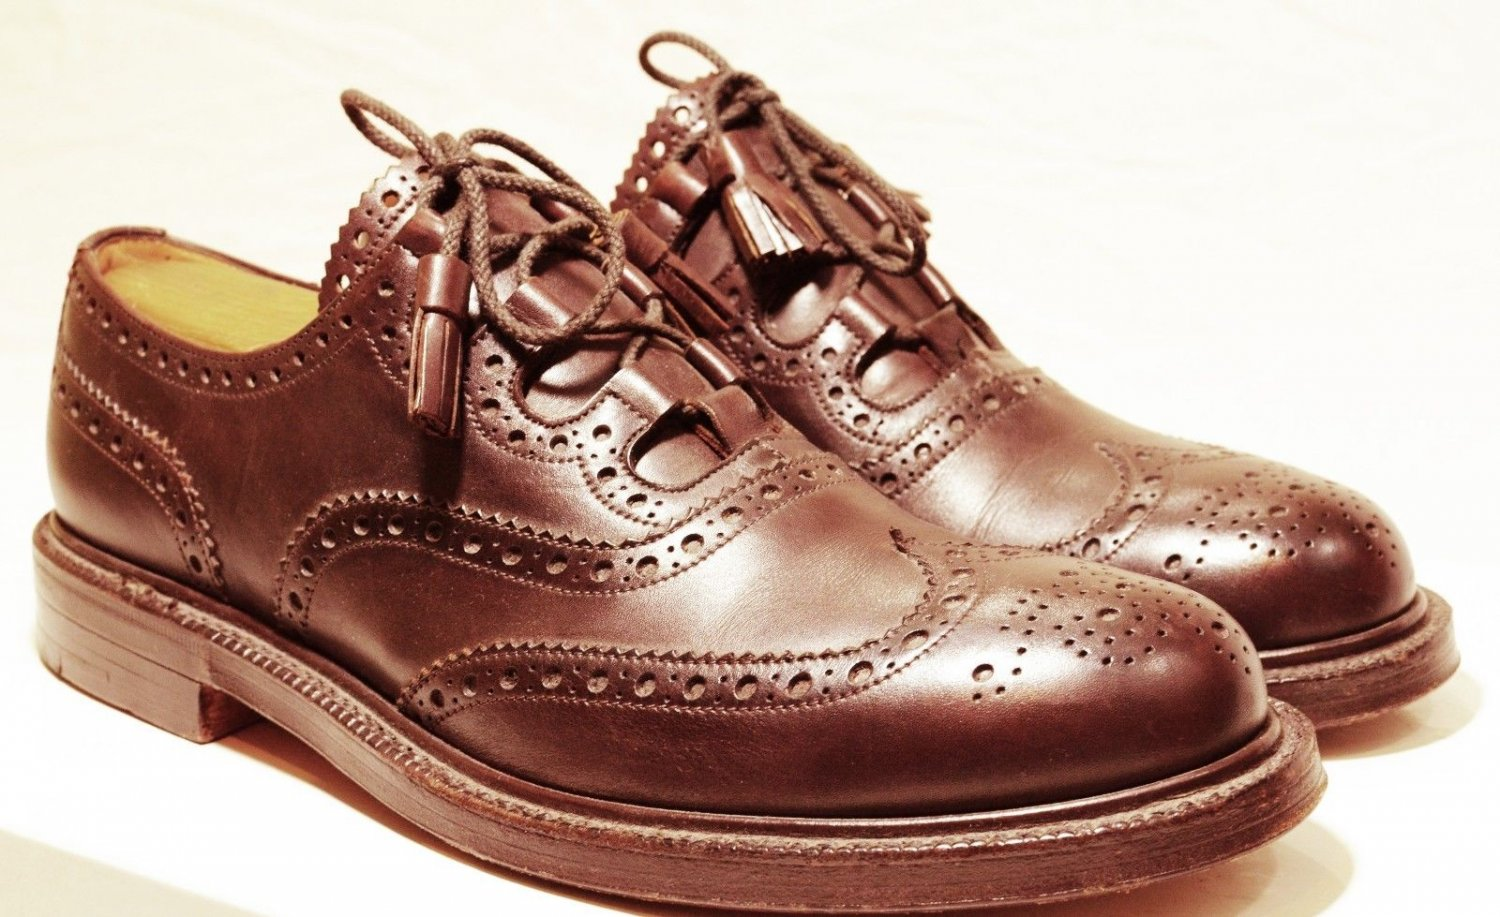 Size 10 US Highland Kilt Brown Leather Shoes Ghillie Brogues Leather Sole And Leather Upper